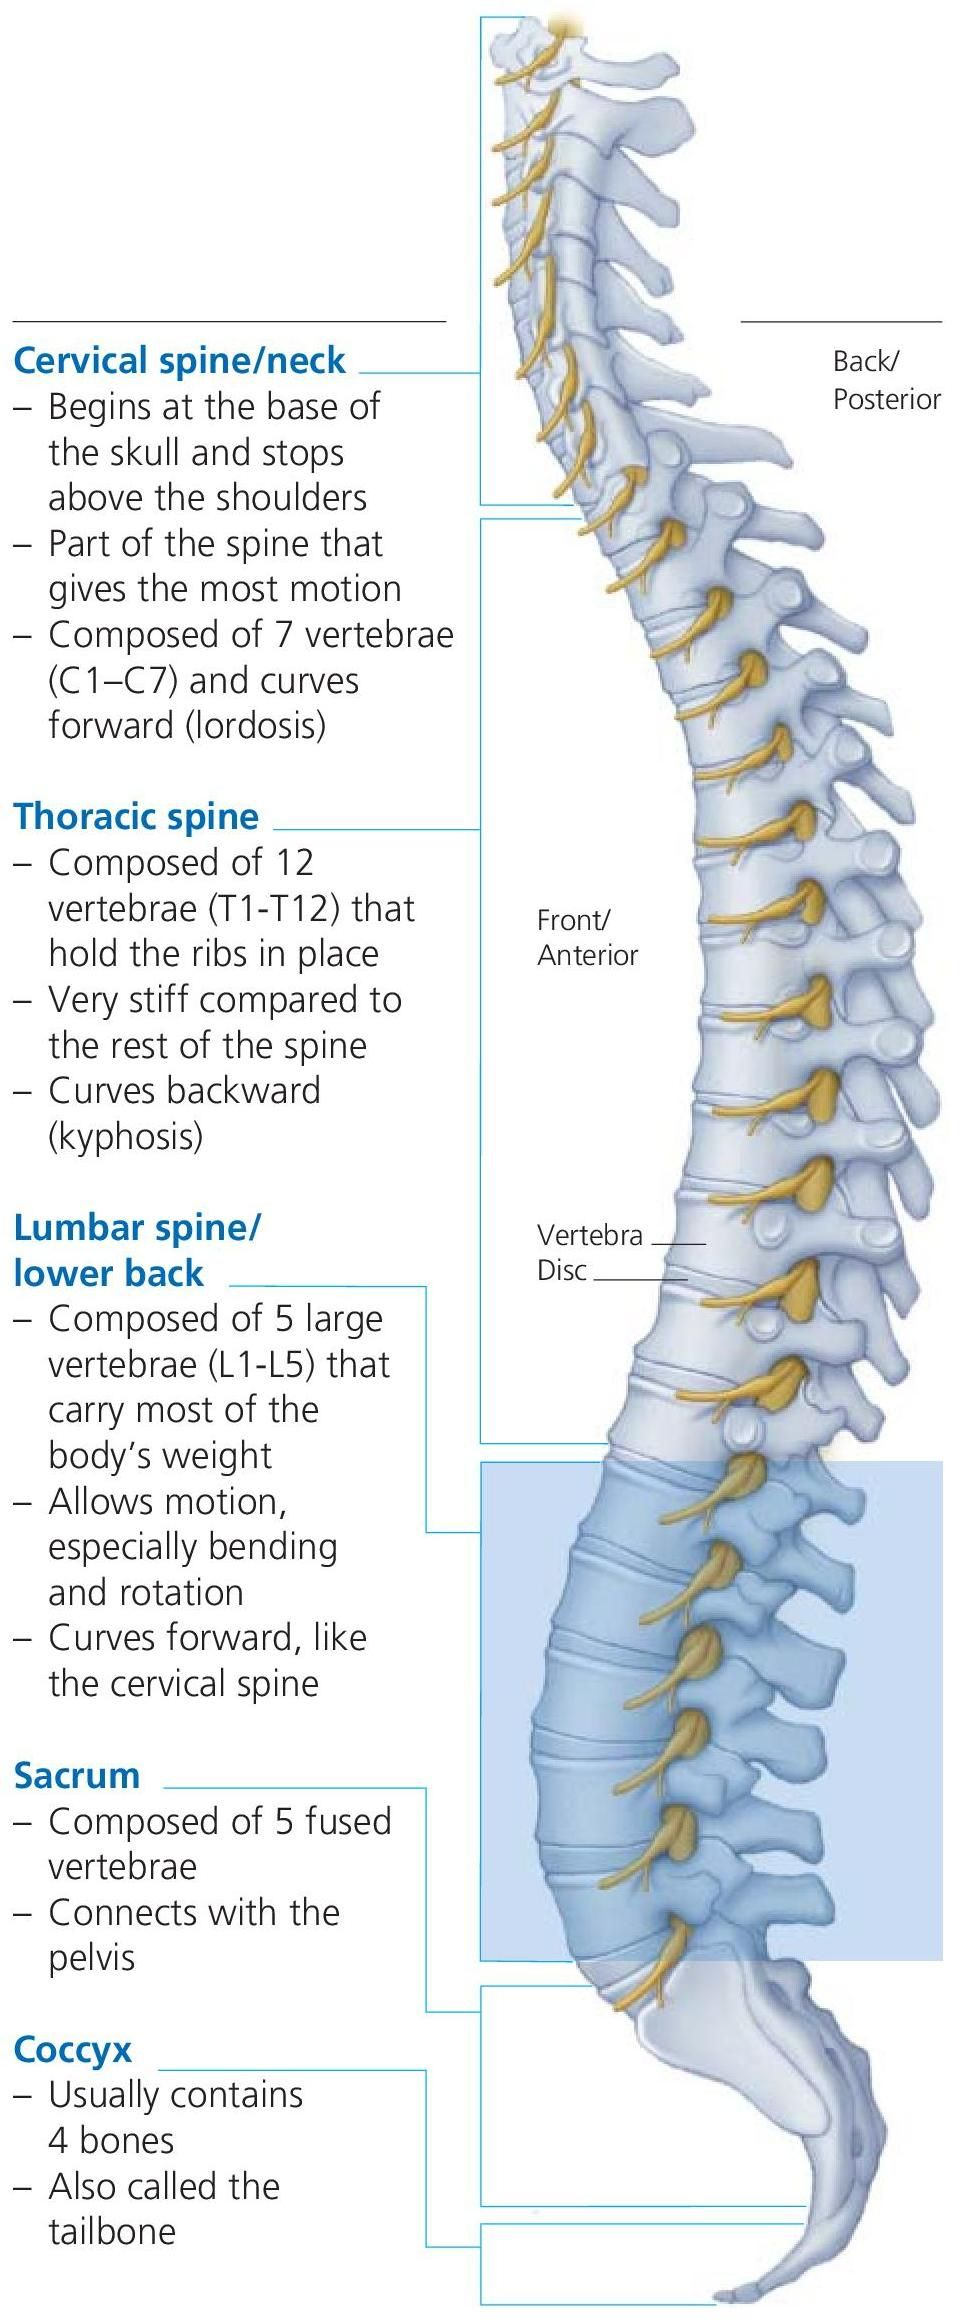 (kyphosis) Lumbar spine/ lower back Composed of 5 large vertebrae (L1-L5) that carry most of the body s weight Allows motion, especially bending and rotation Curves